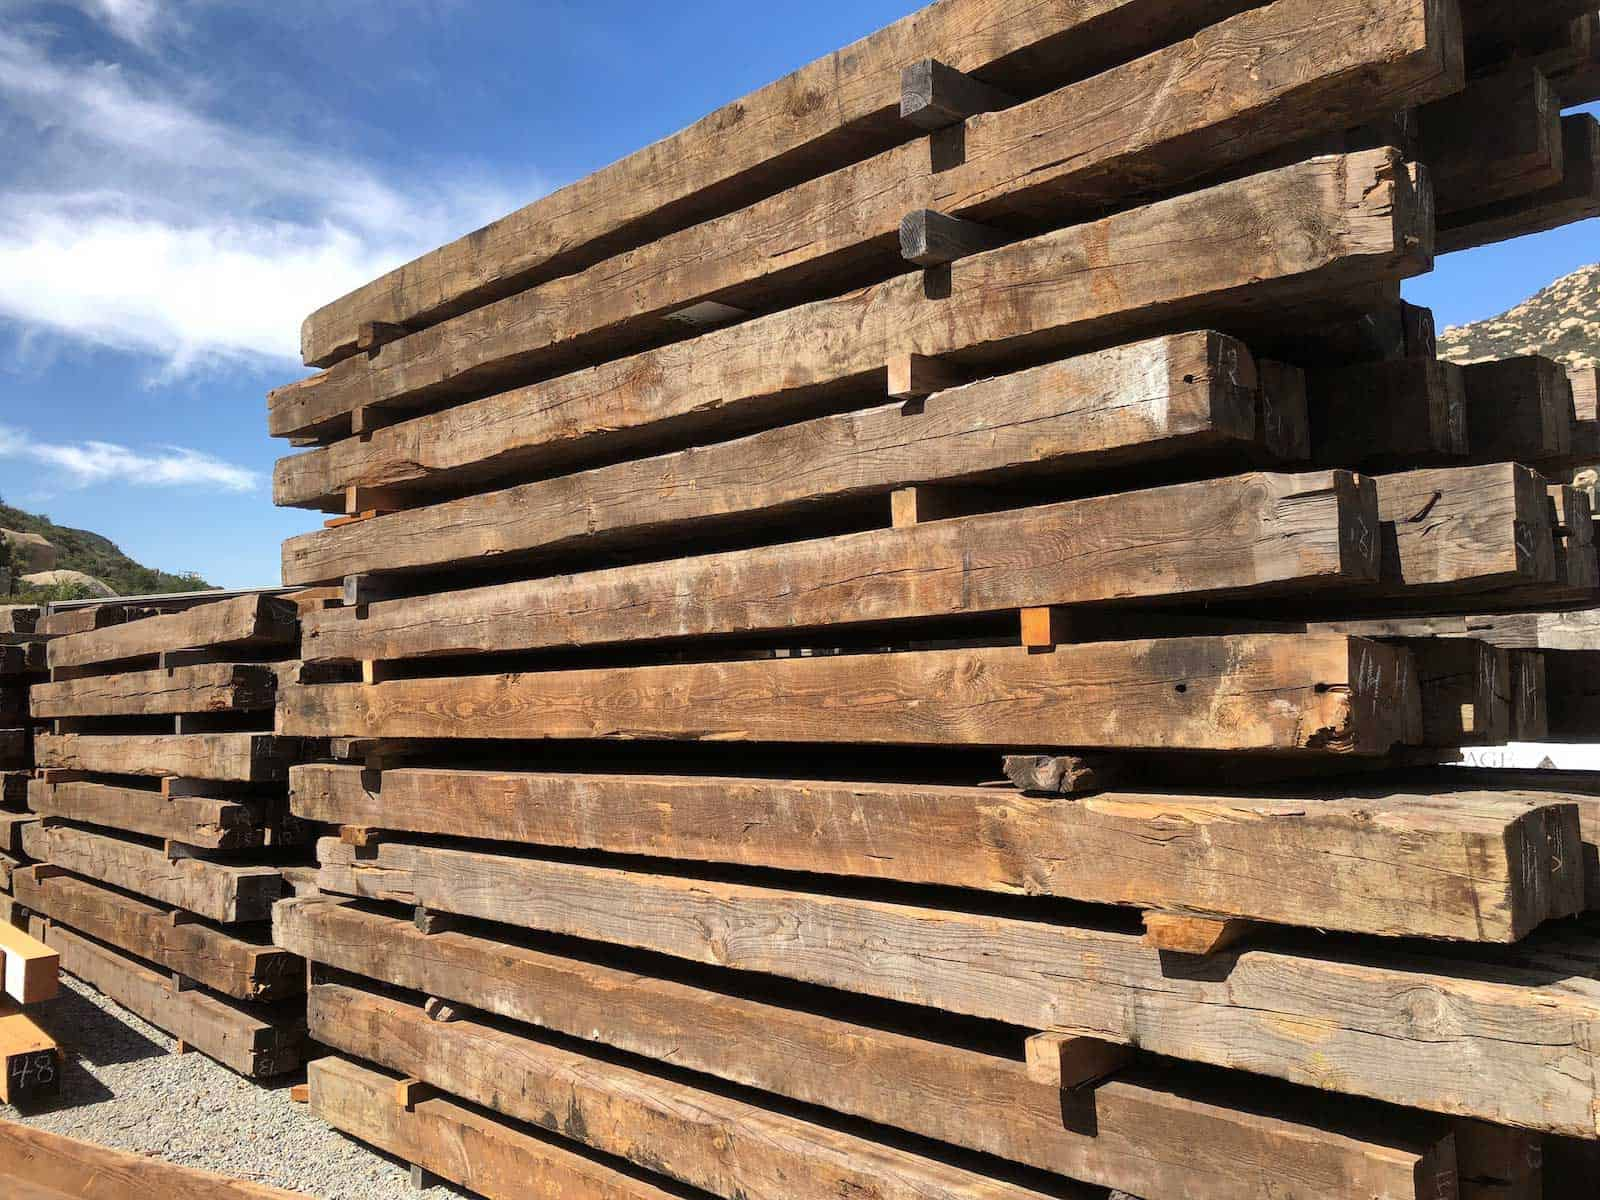 As Is Reclaimed 8x8 heart pine inventory - Vintage Reclaimed Douglas Fir